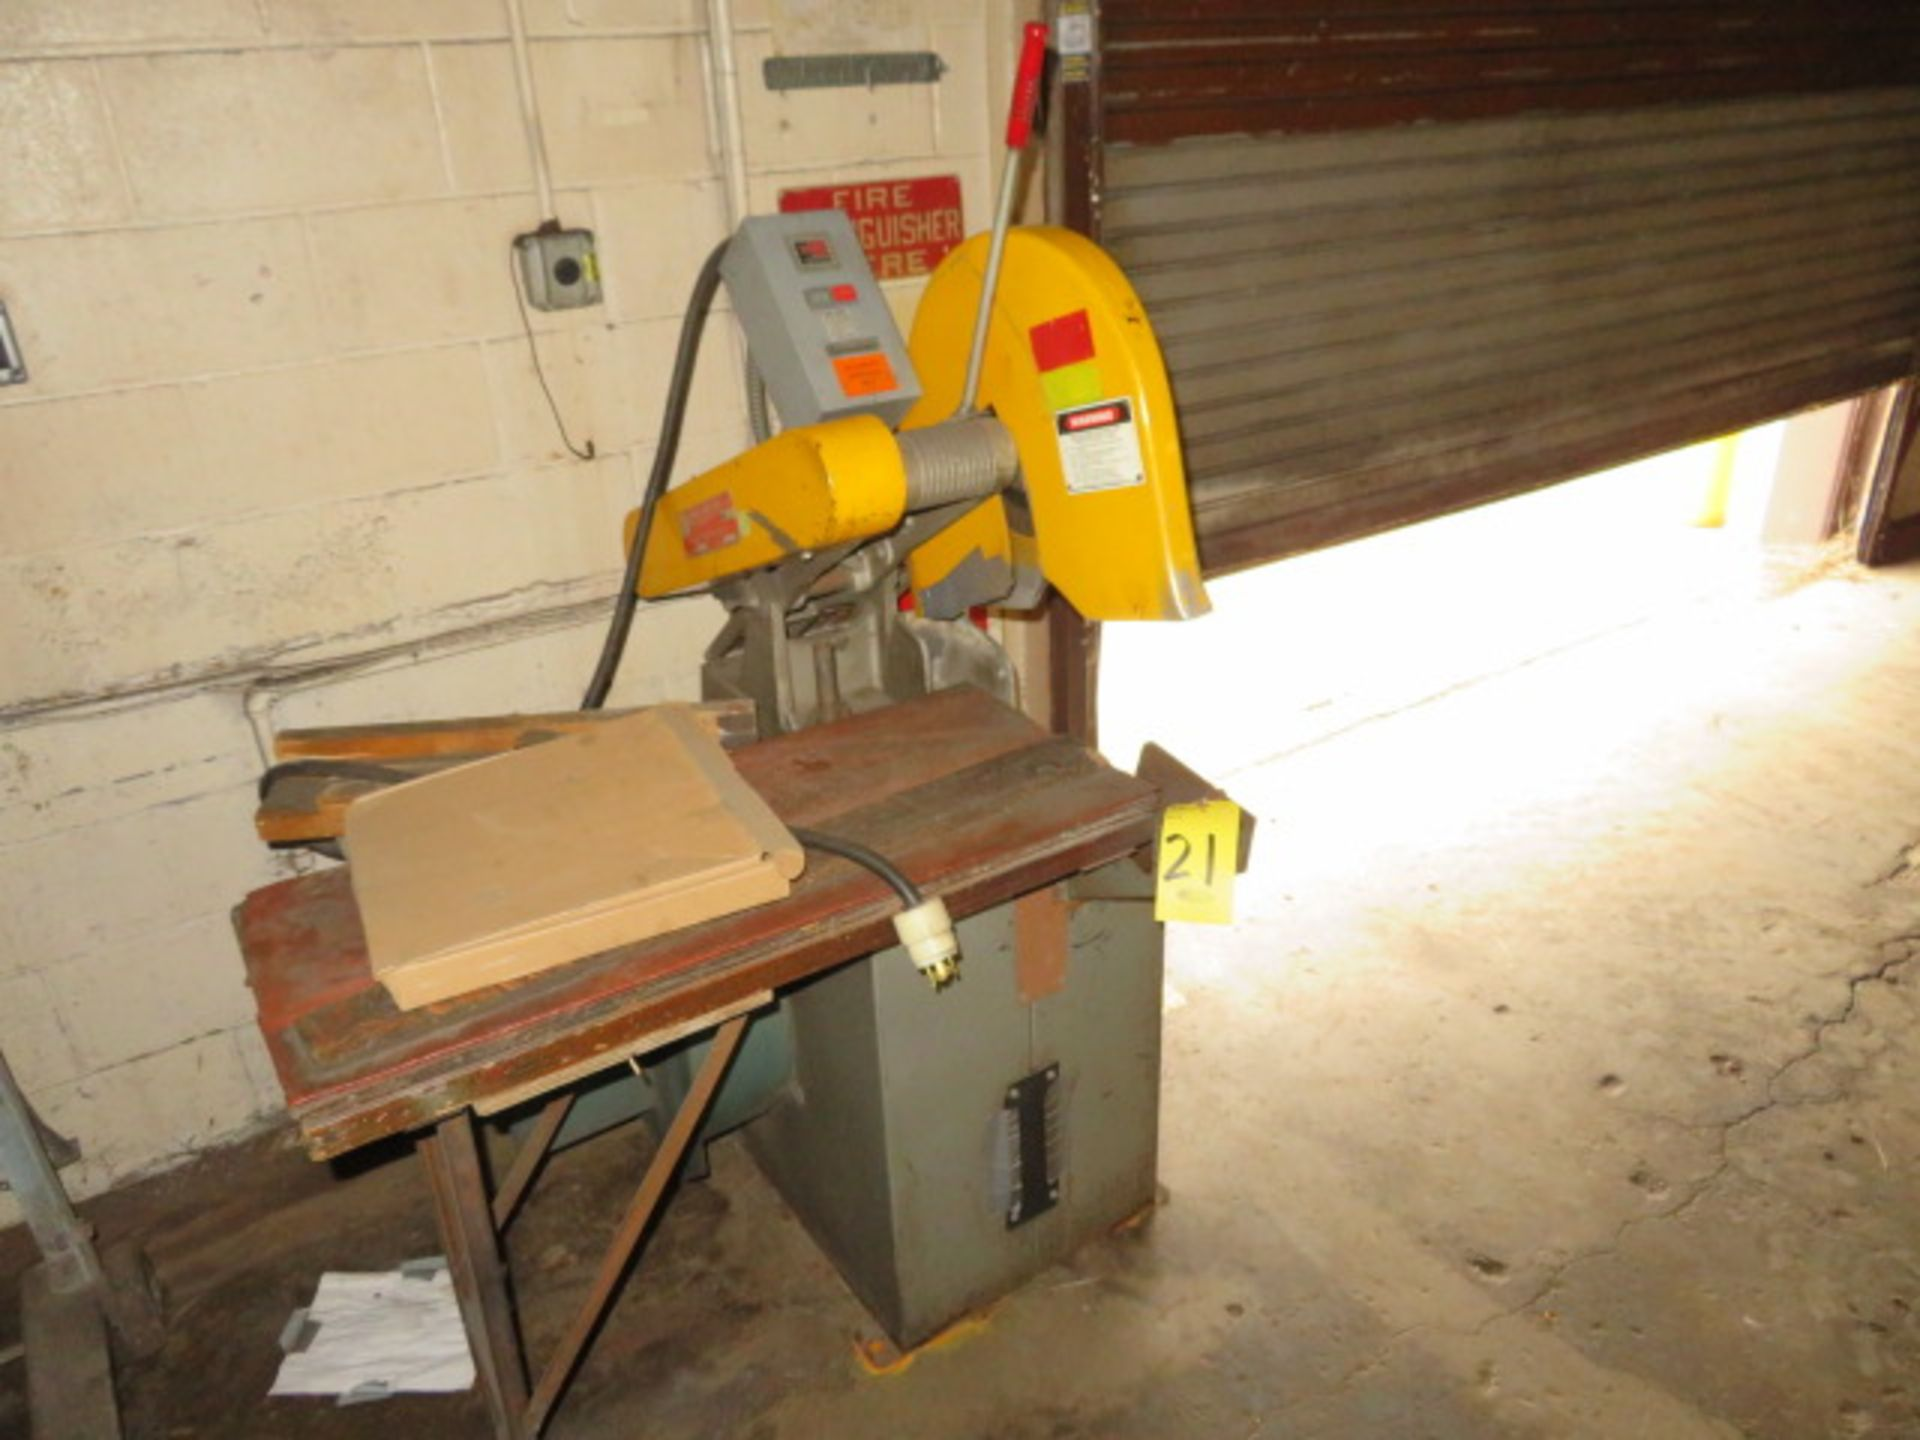 Lot 21 - EVERETT 14 16 CUTOFF SAW, 7.5HP